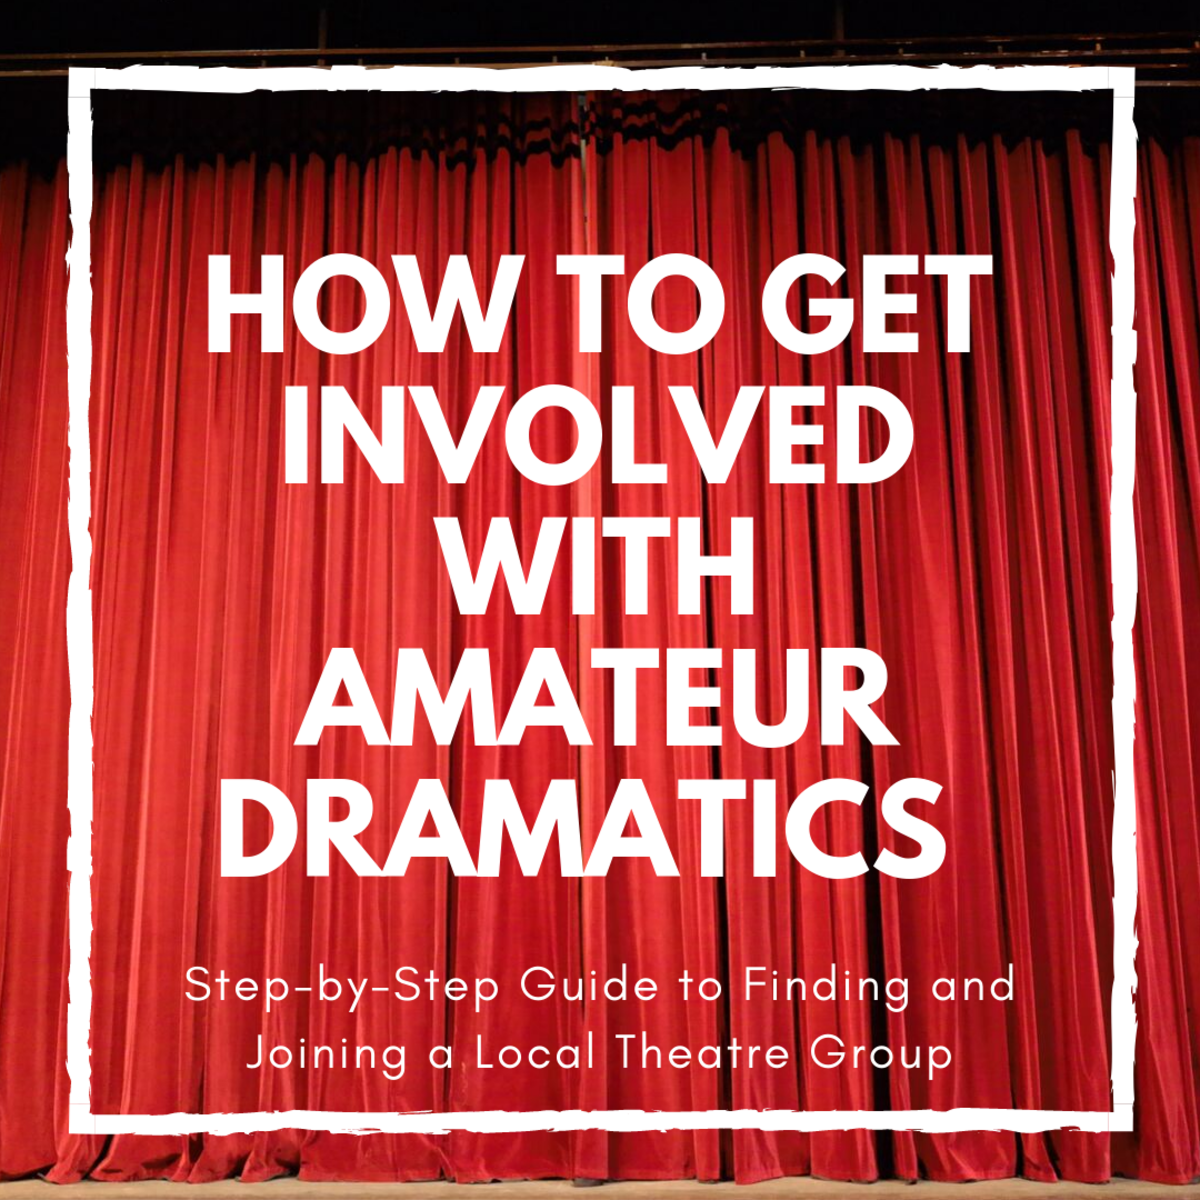 How to Join the Amateur Dramatic Society (A First Step Into Acting)